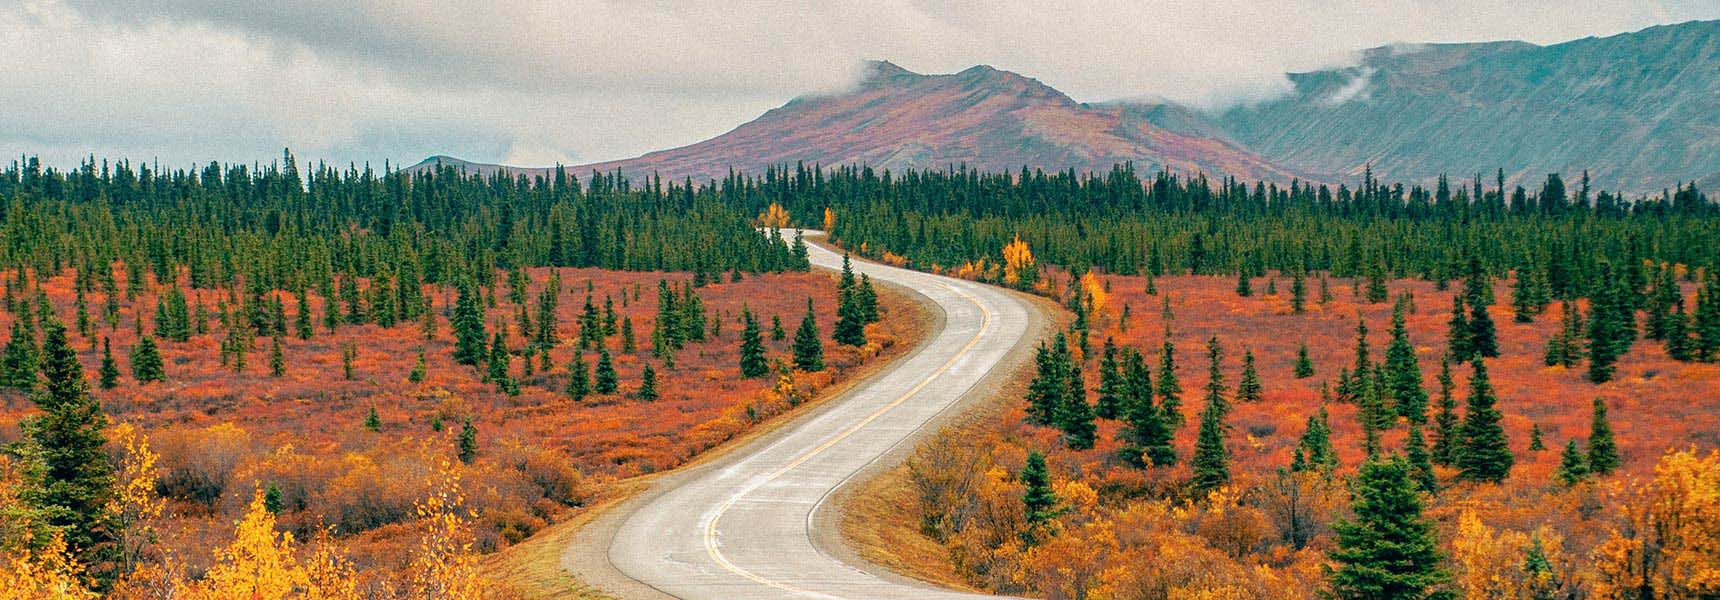 Image of a winding road.